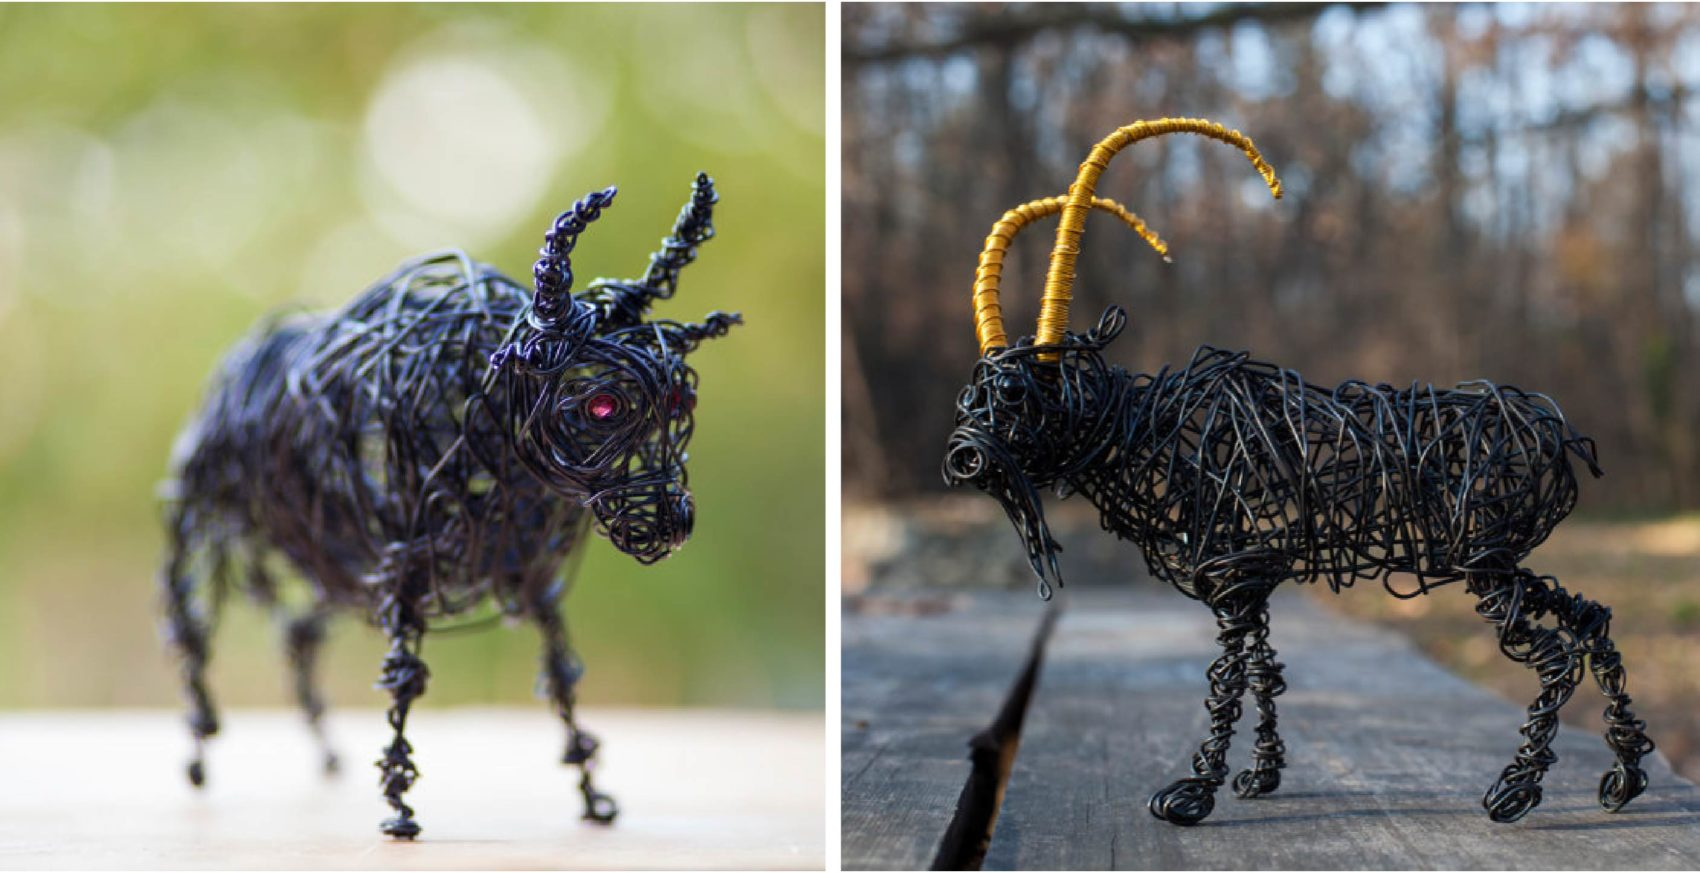 Creative Sculptures Made of Wires by Nir Vena